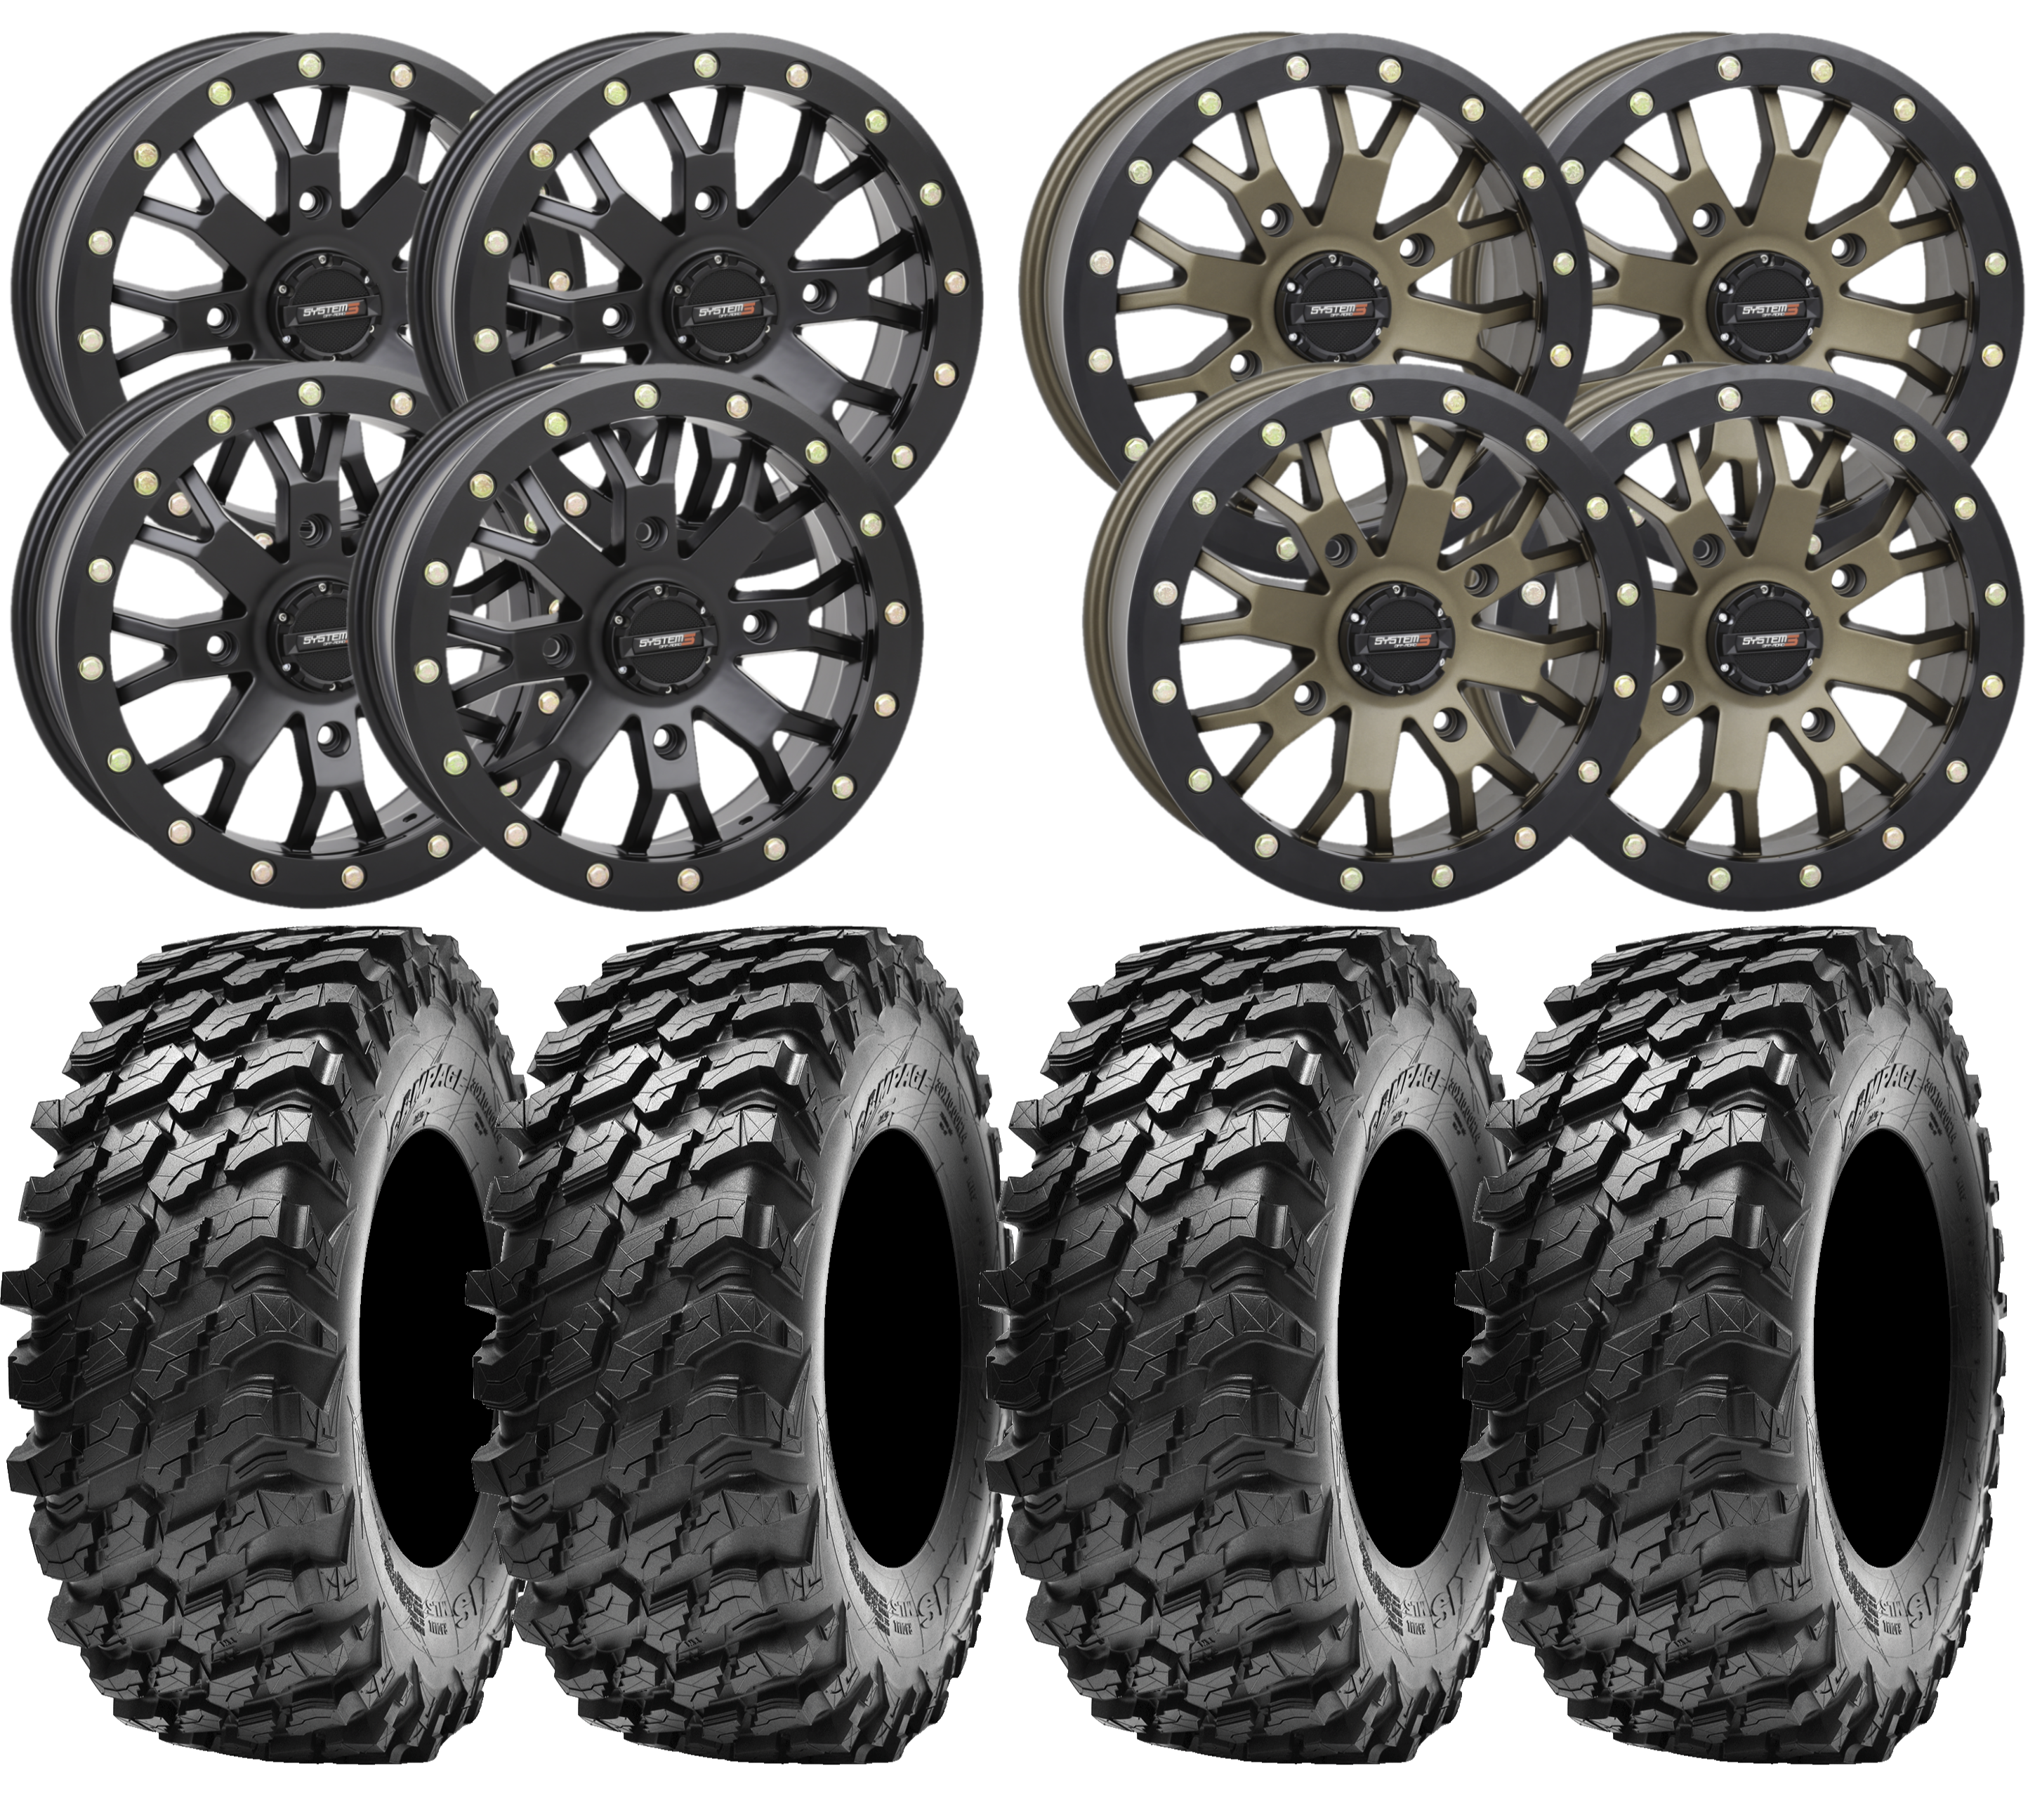 System3 Sb 4 And Maxxis Rampage Utv Wheel And Tire Kit Planetsxs Com